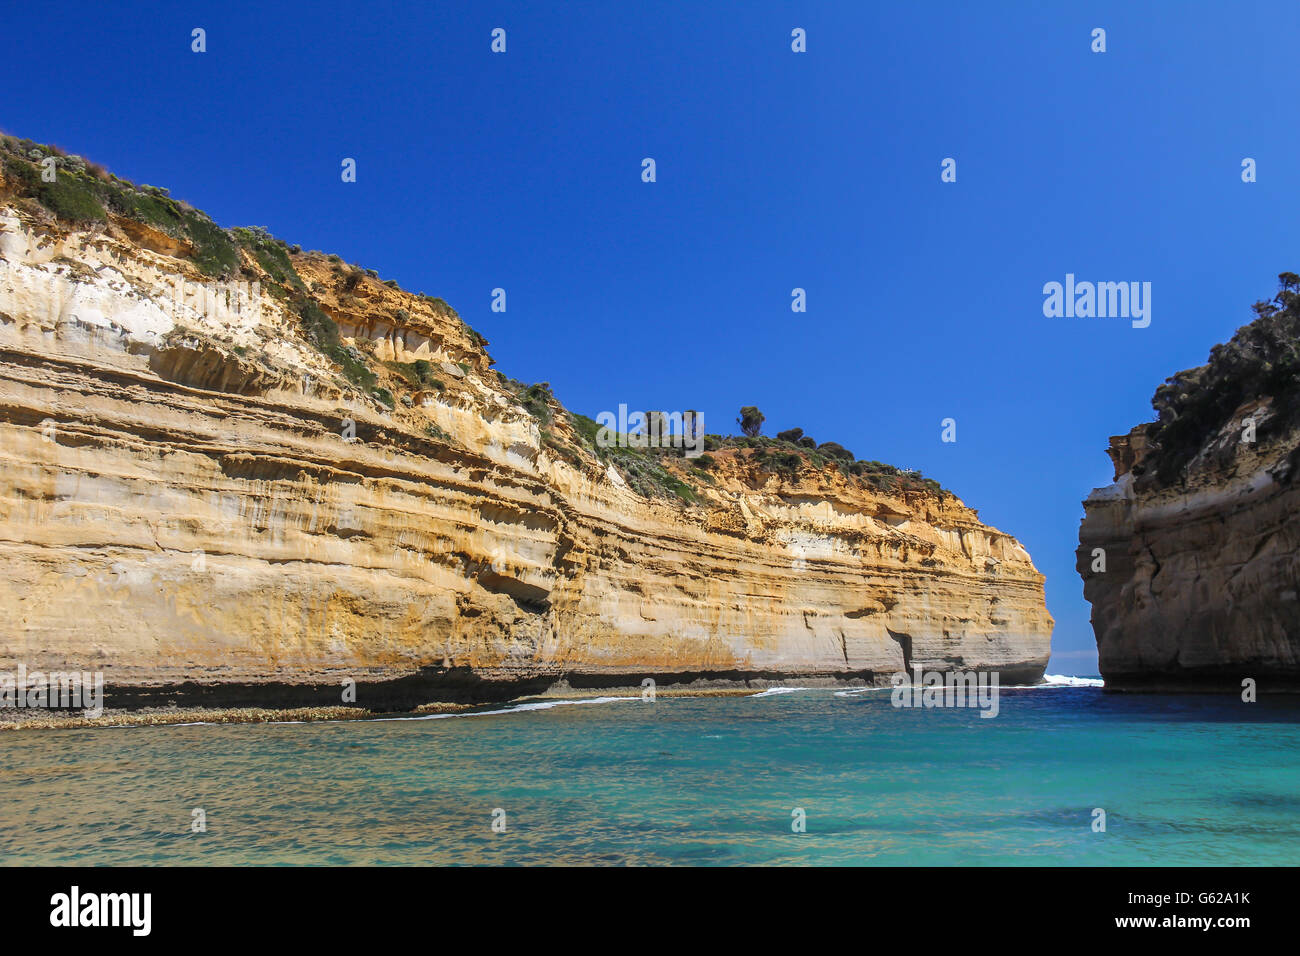 Alla Gola Loch Ard in Australia Great Ocean Road Immagini Stock